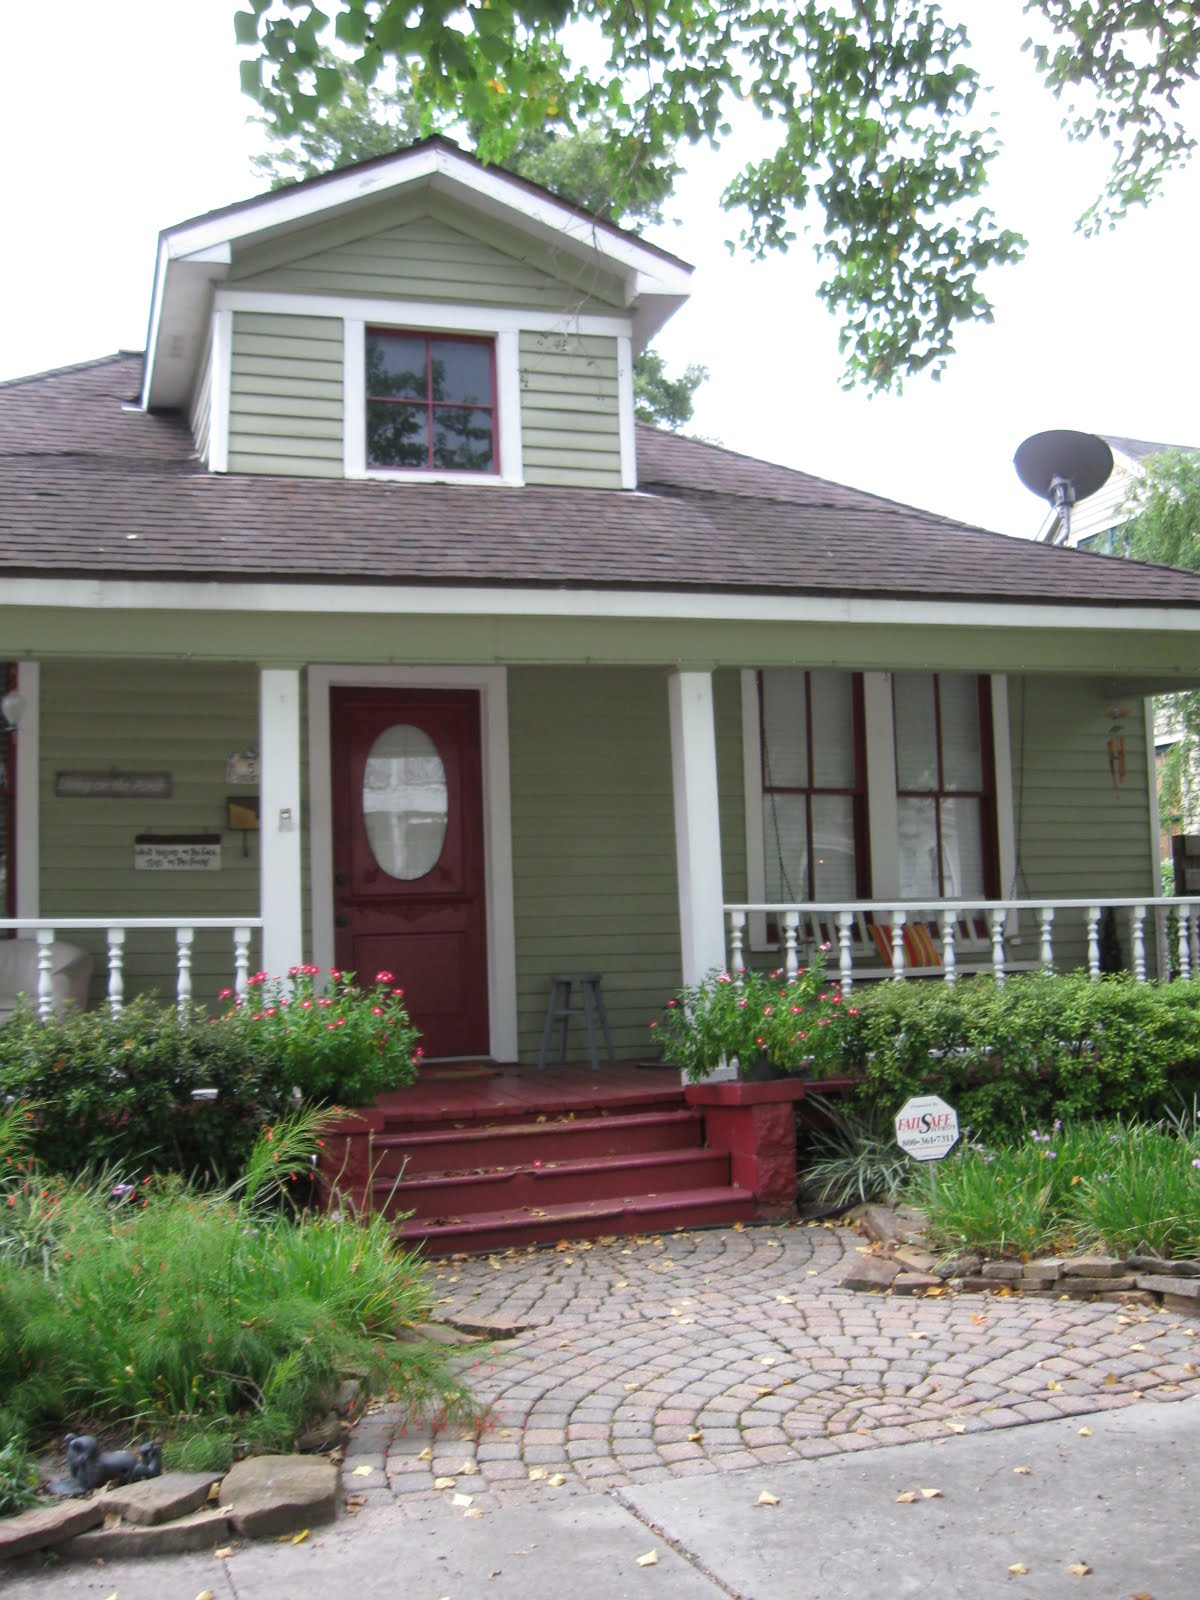 The other houston 1930 front porch bungalow for House of paint designs houston